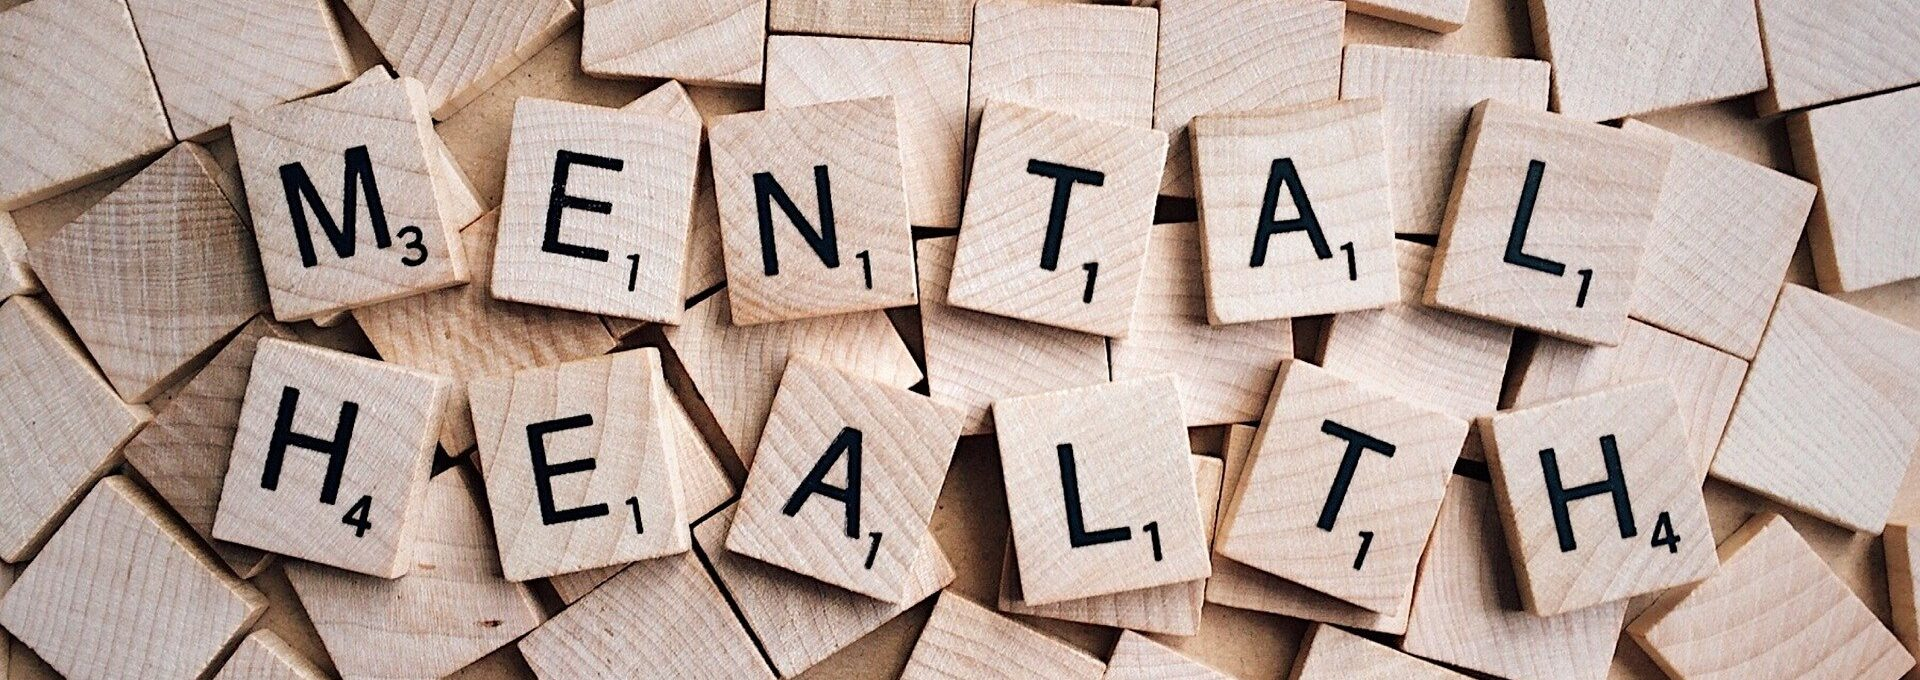 'mental health' spelled out in scrabble letters